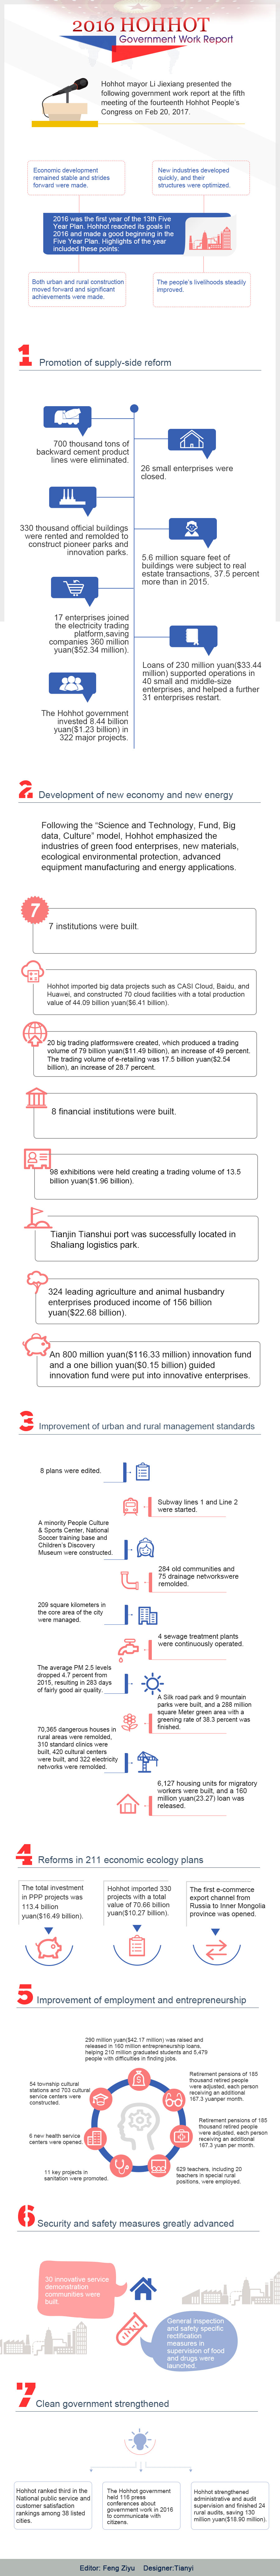 2016-Hohhot-Government-Work-Report(3).jpg